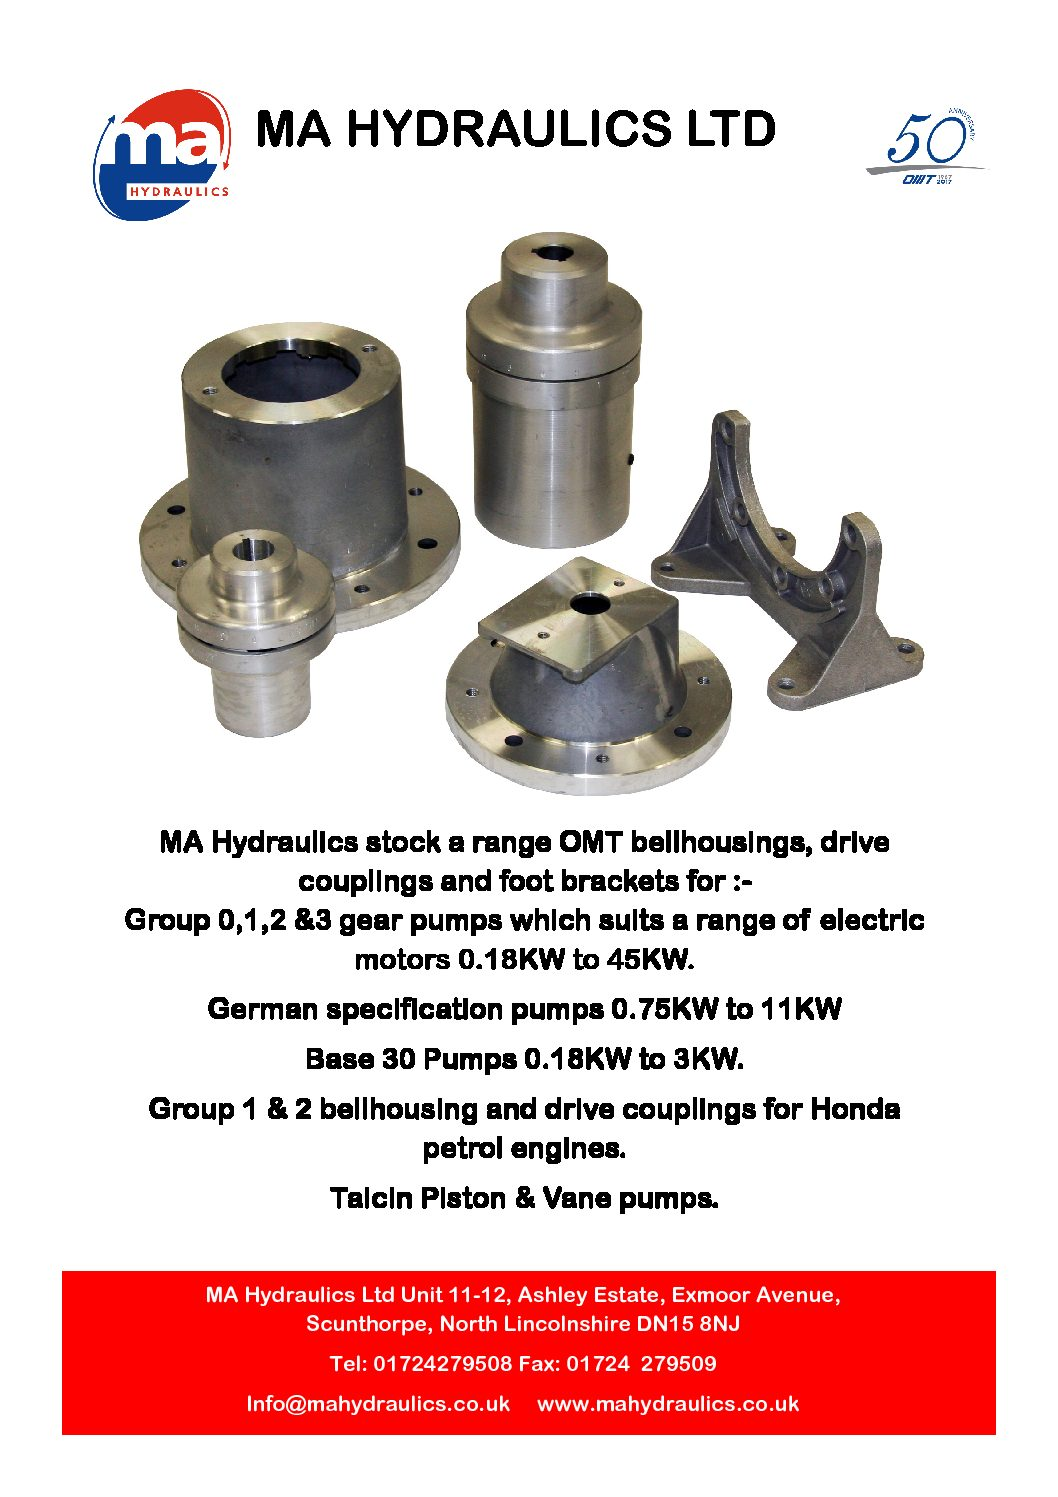 MA Hydraulics Ltd Stock a range of OMT Bellhousings and Couplings